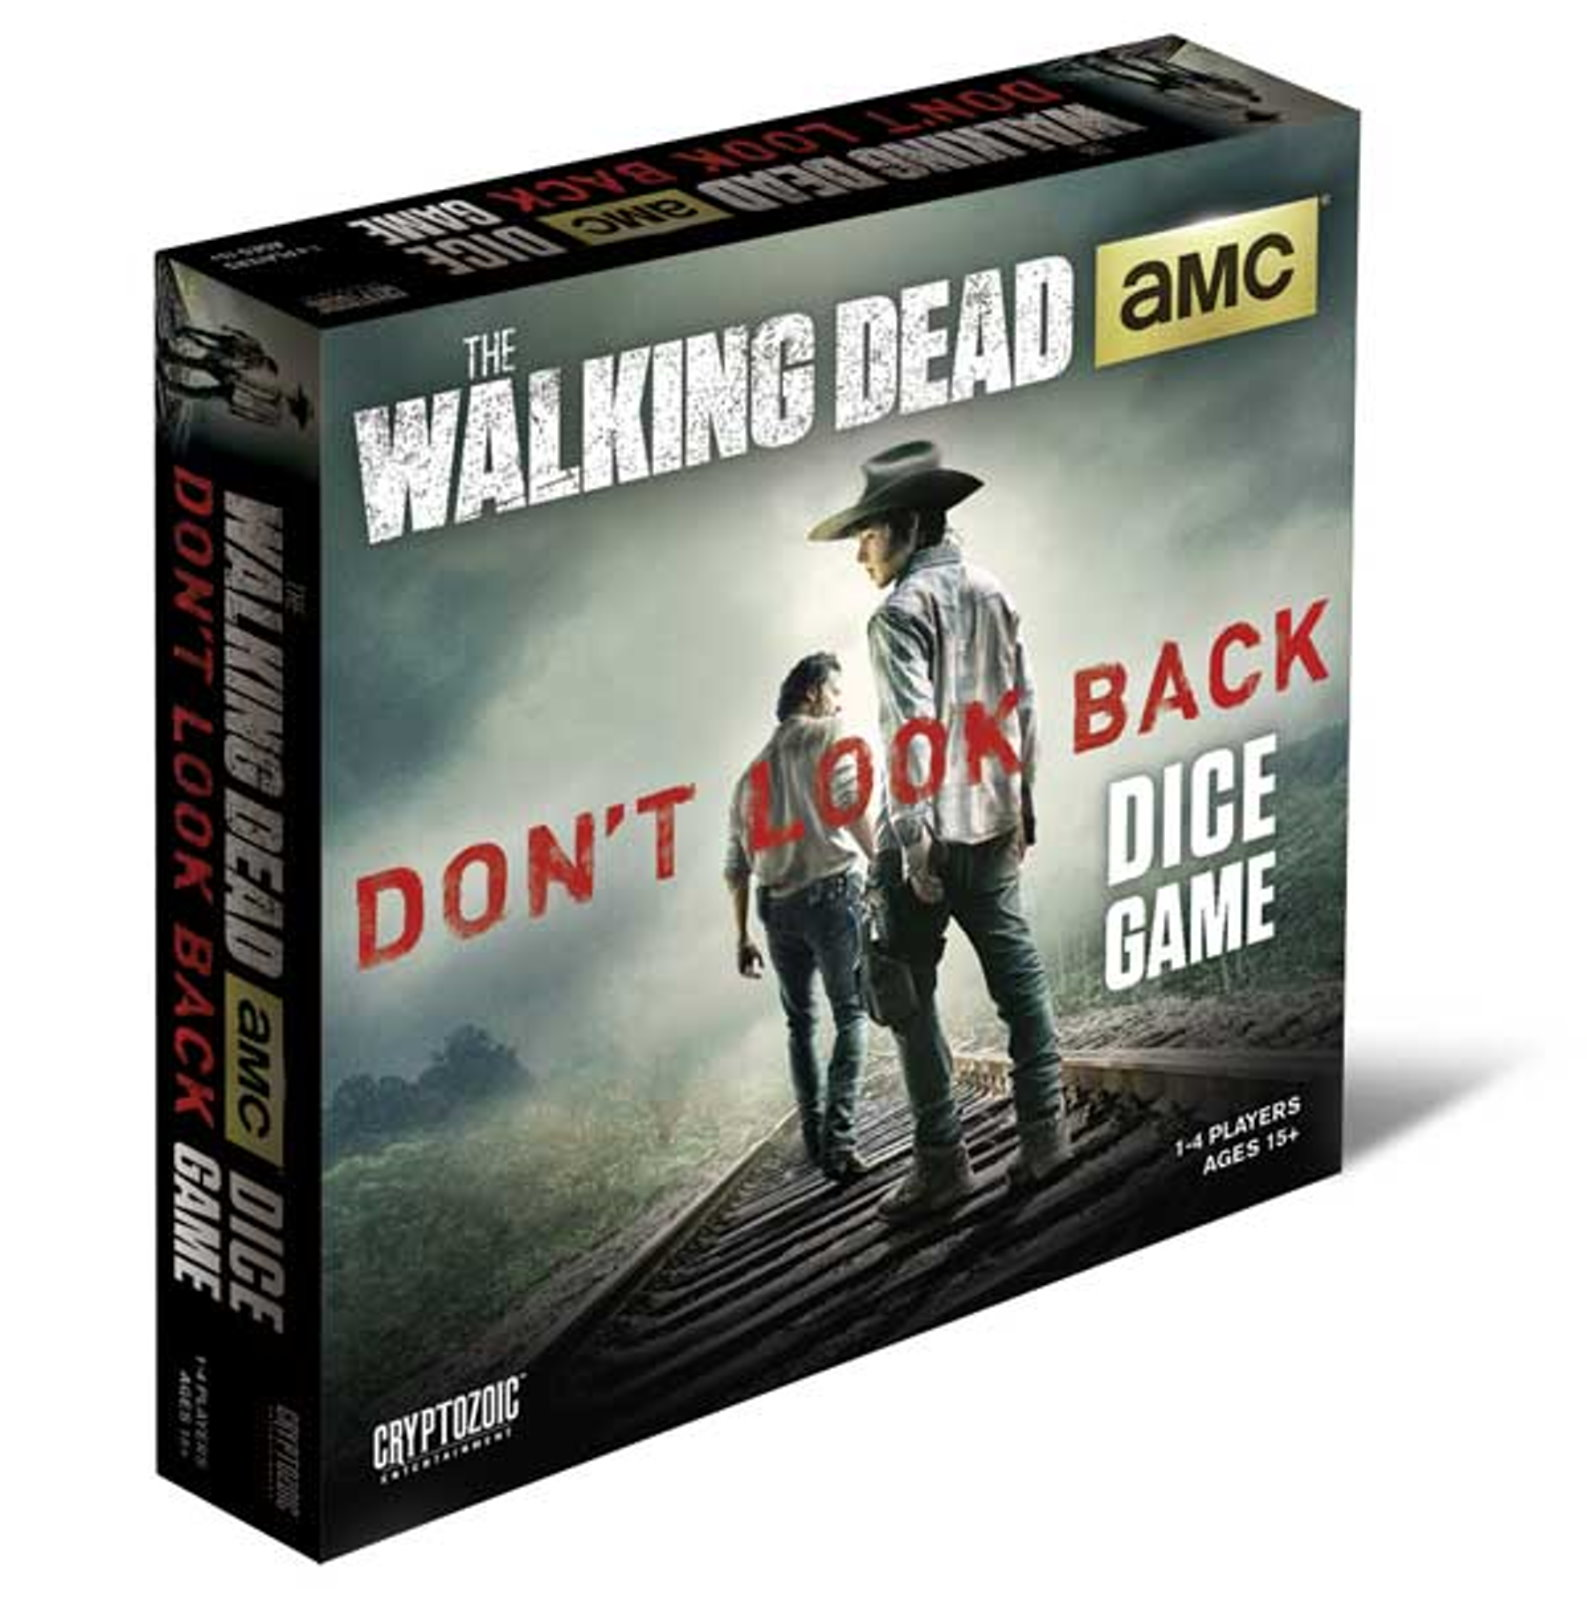 The Walking Dead Don't Look Back Competitive Dice Game